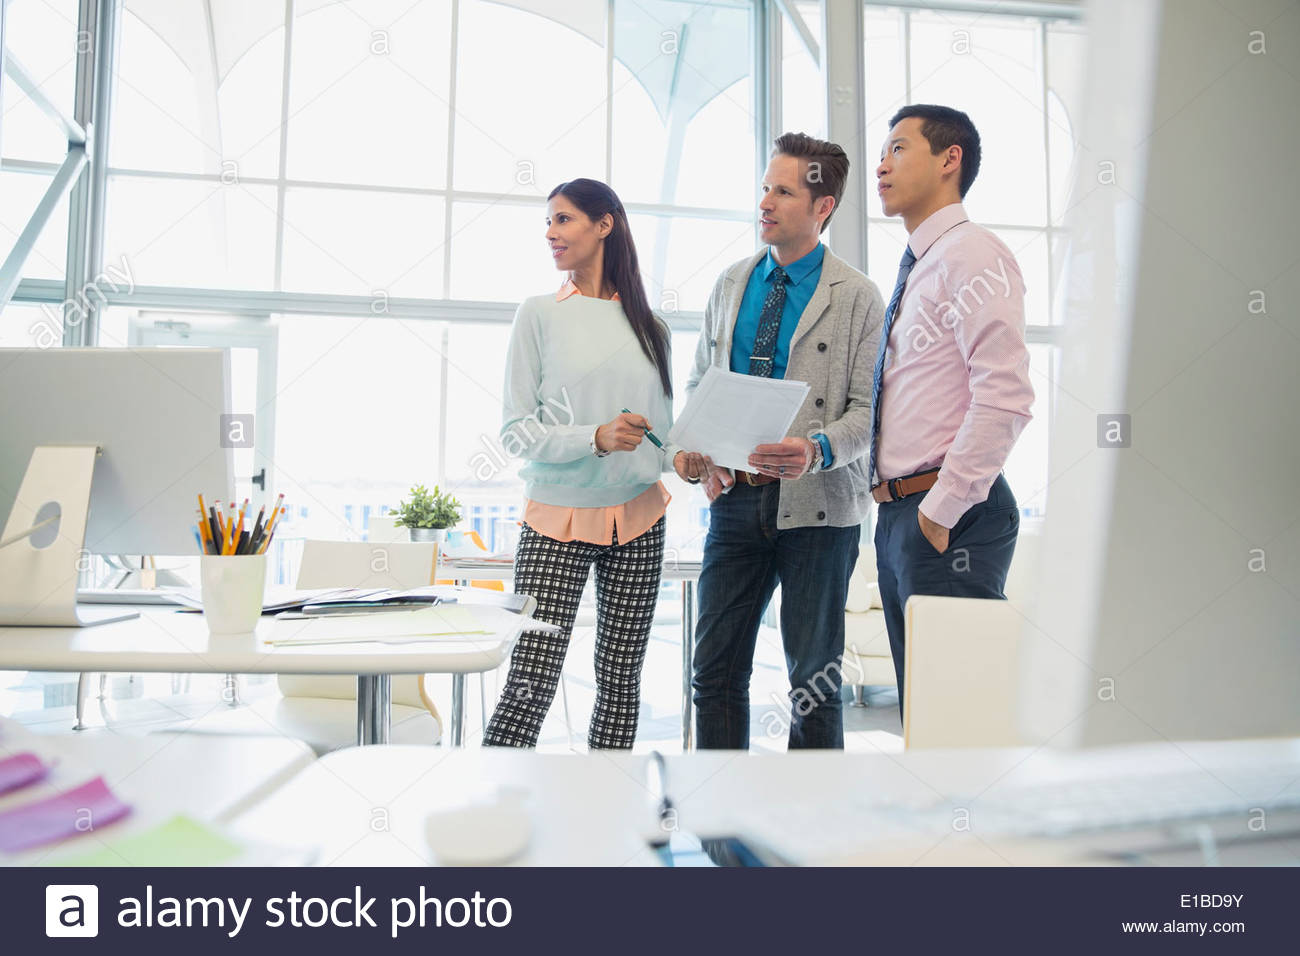 Les gens d'affaires meeting in office Photo Stock